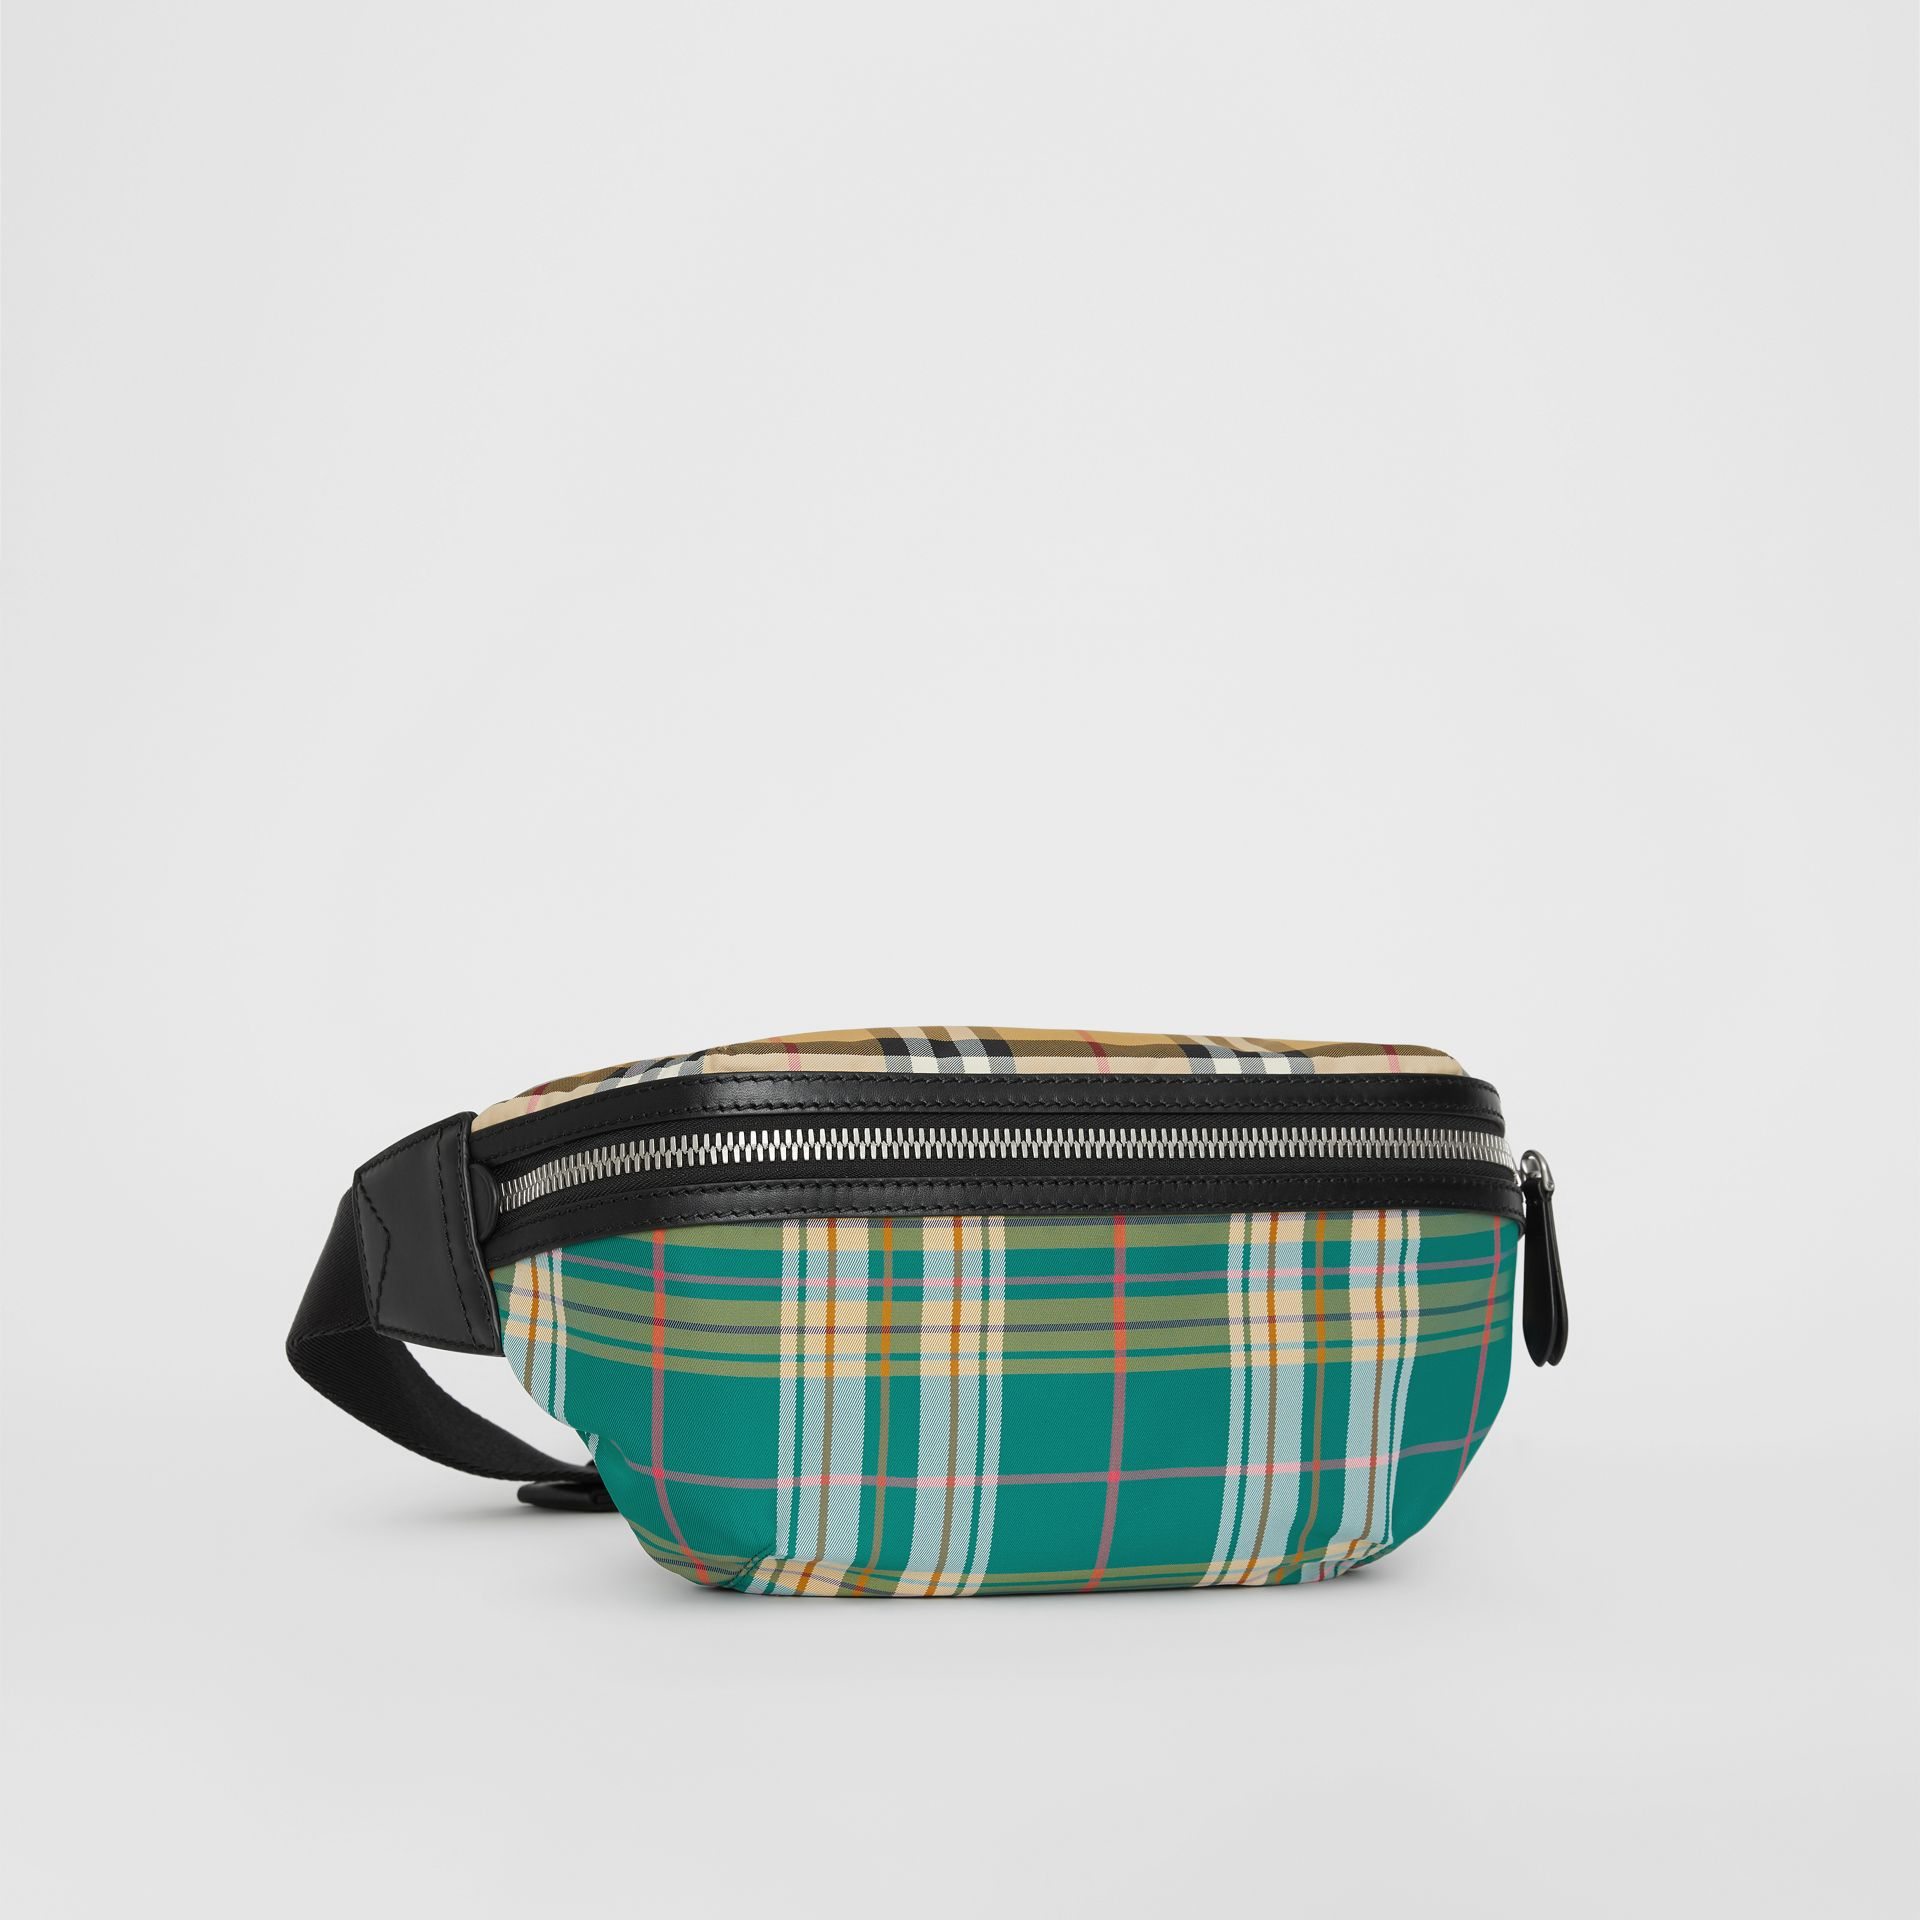 Medium Vintage Check and Tartan Bum Bag in Pine Green | Burberry Australia - gallery image 4